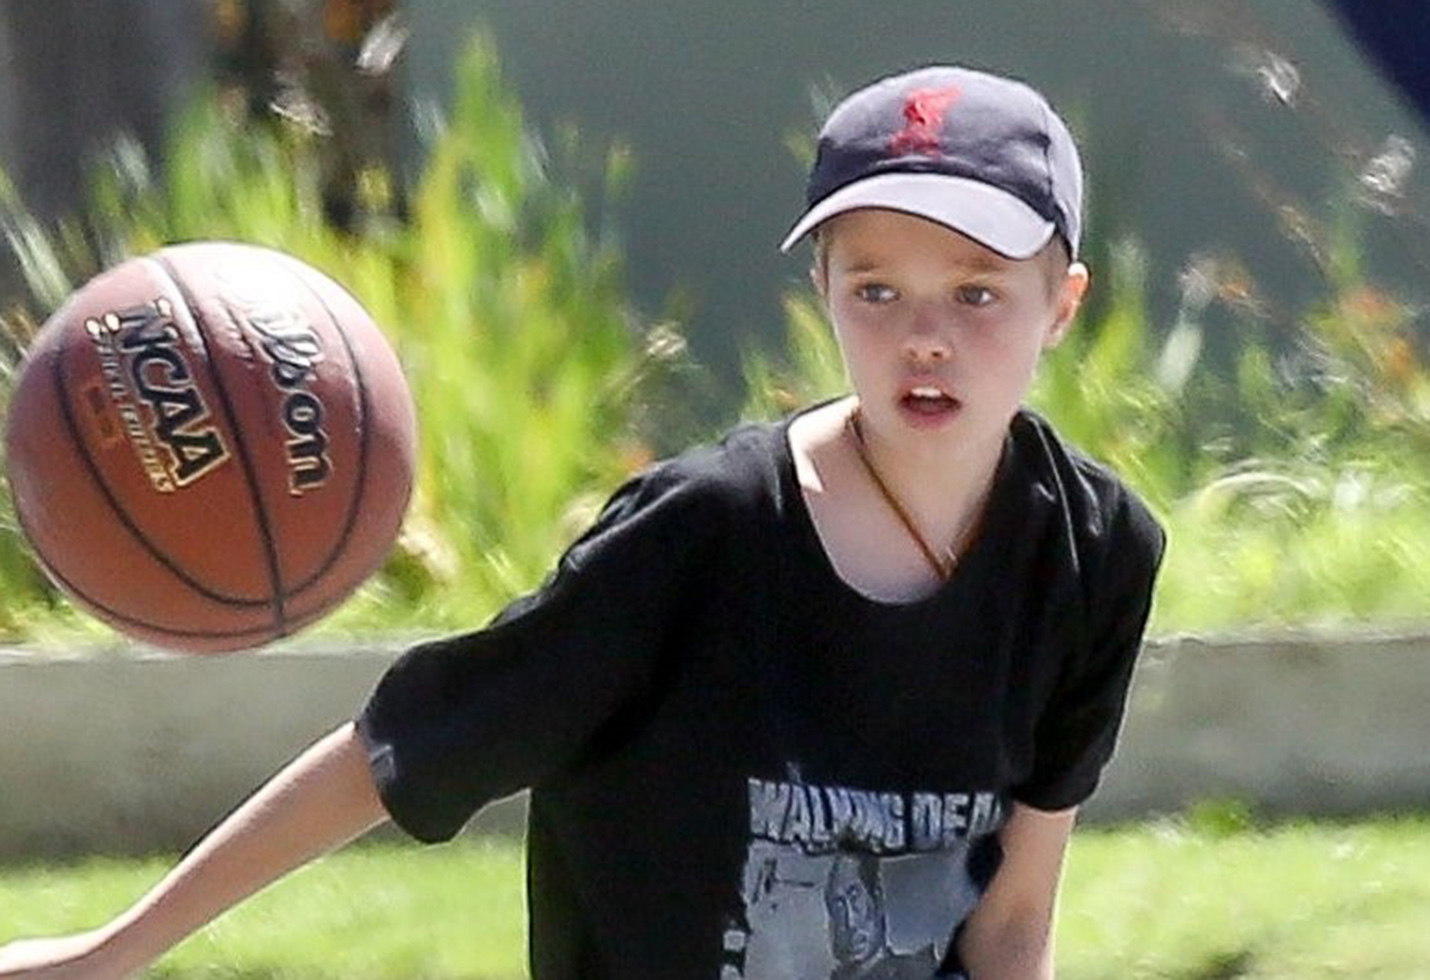 *PREMIUM EXCLUSIVE* Shiloh Jolie Pitt shoots some hoops in Malibu